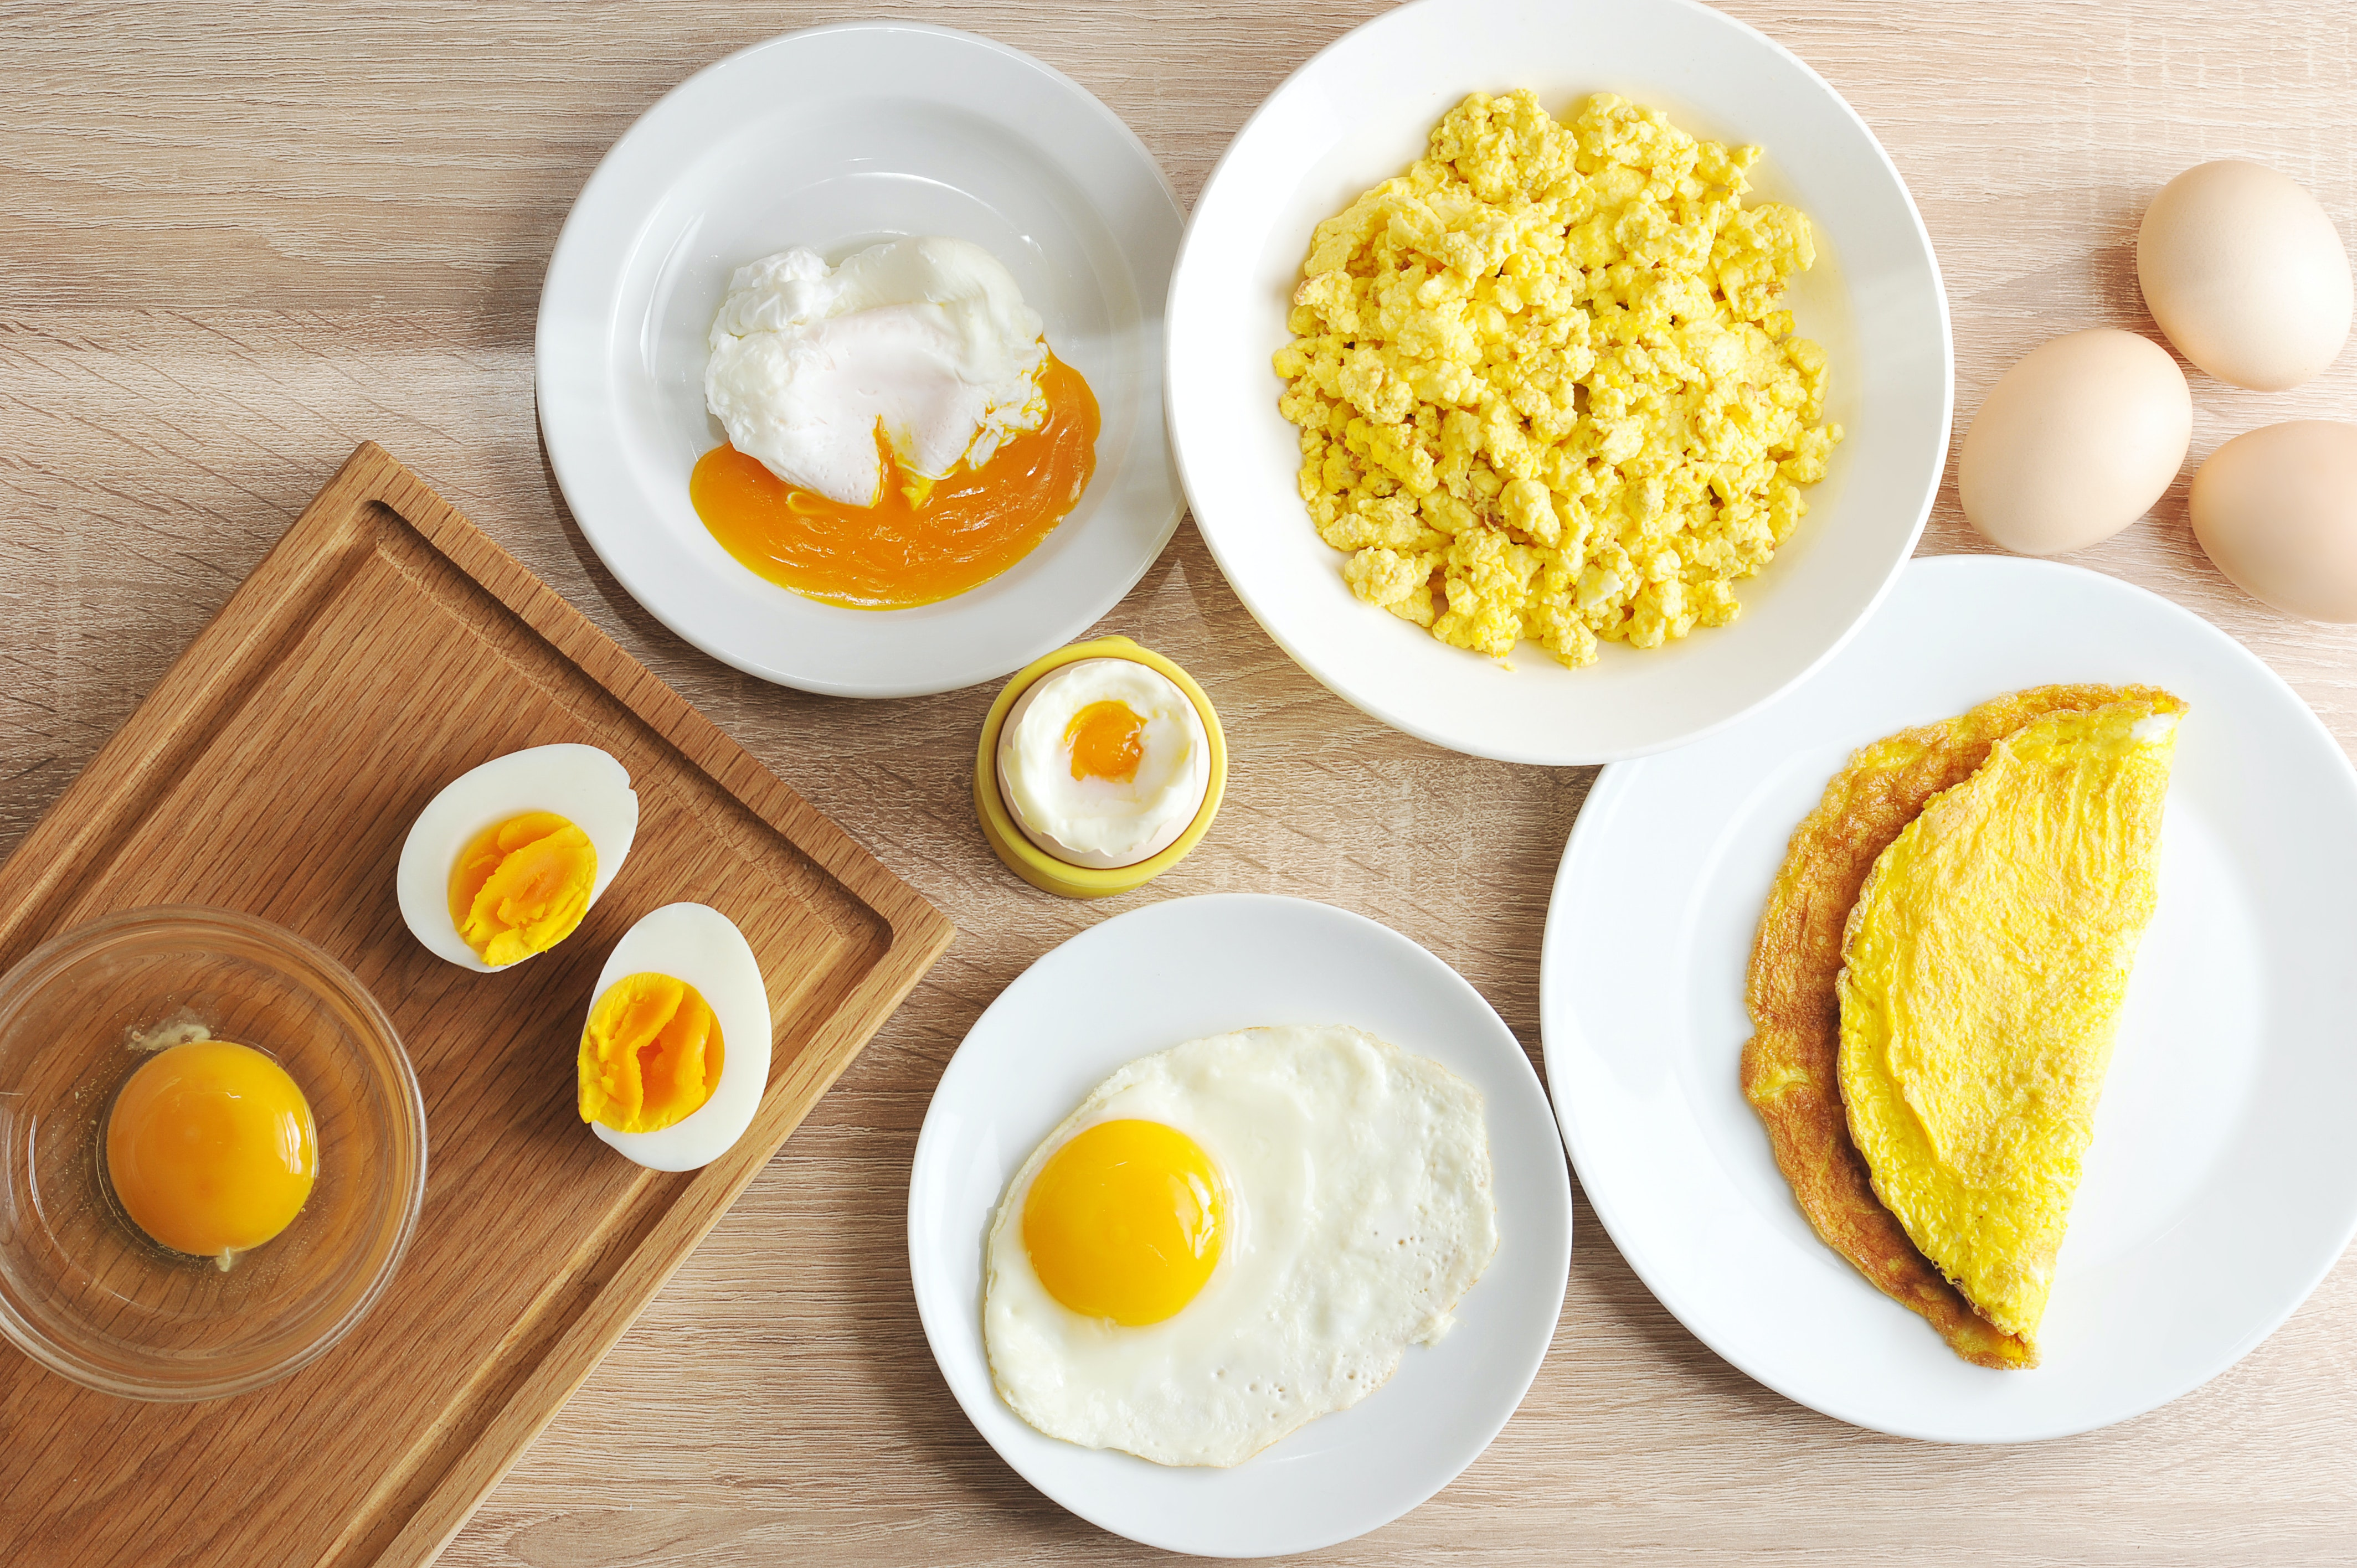 New cholesterol study may lead you to ask: Pass the eggs, or pass on the eggs?